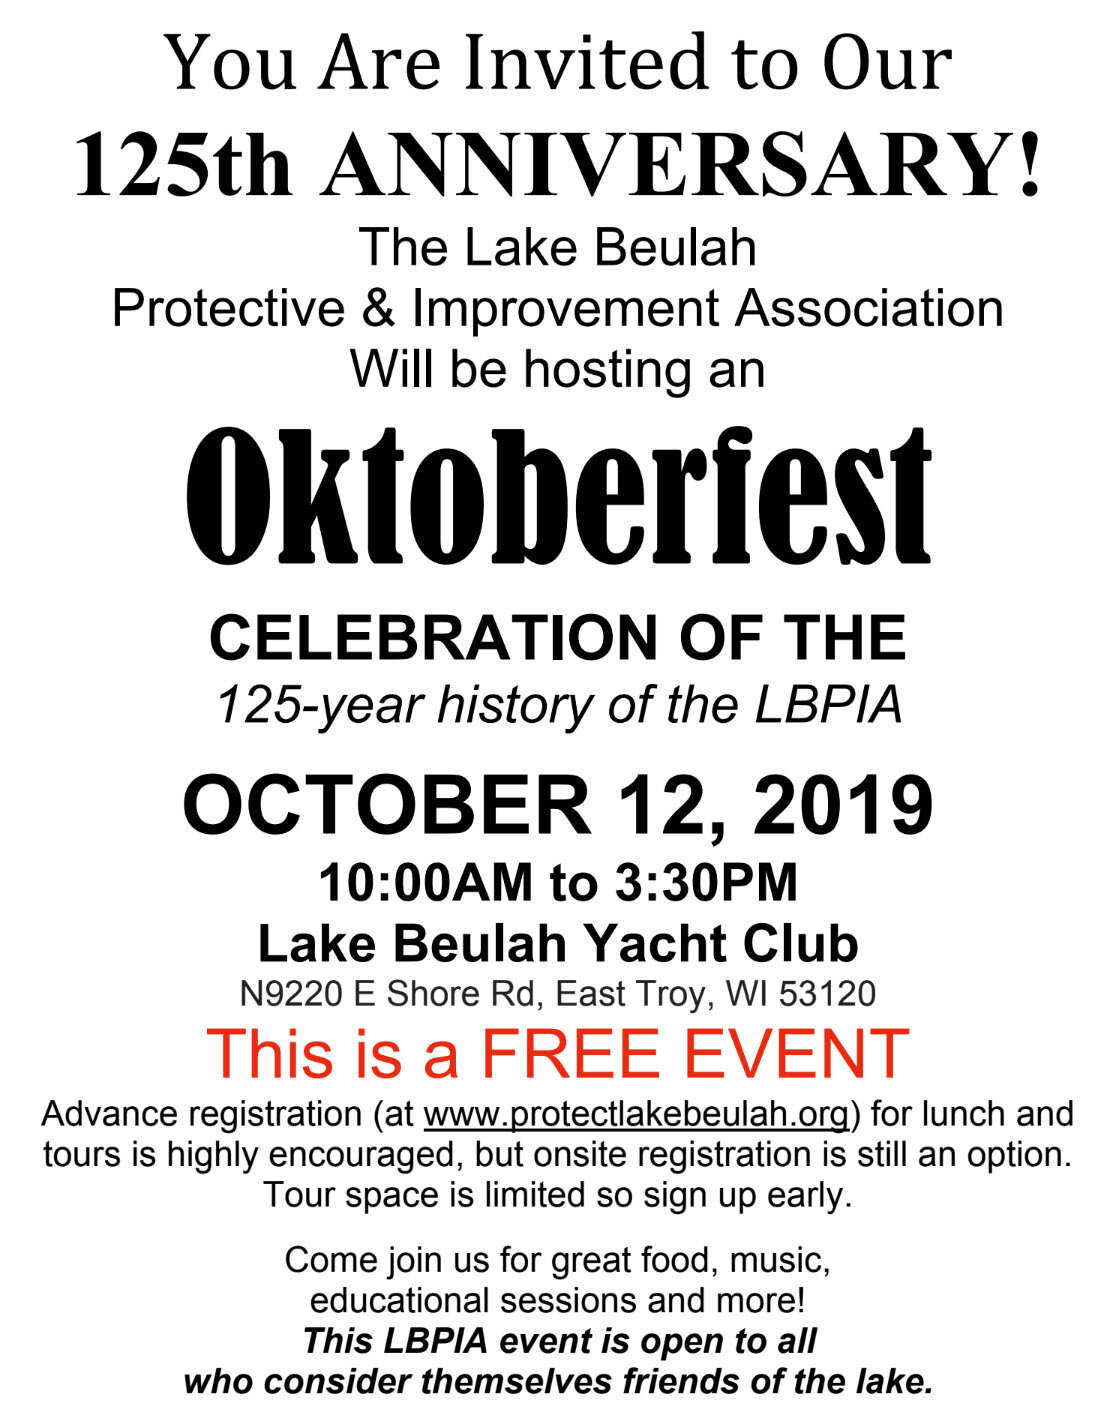 2019 Fall 125th Event Oktoberfest.jpg